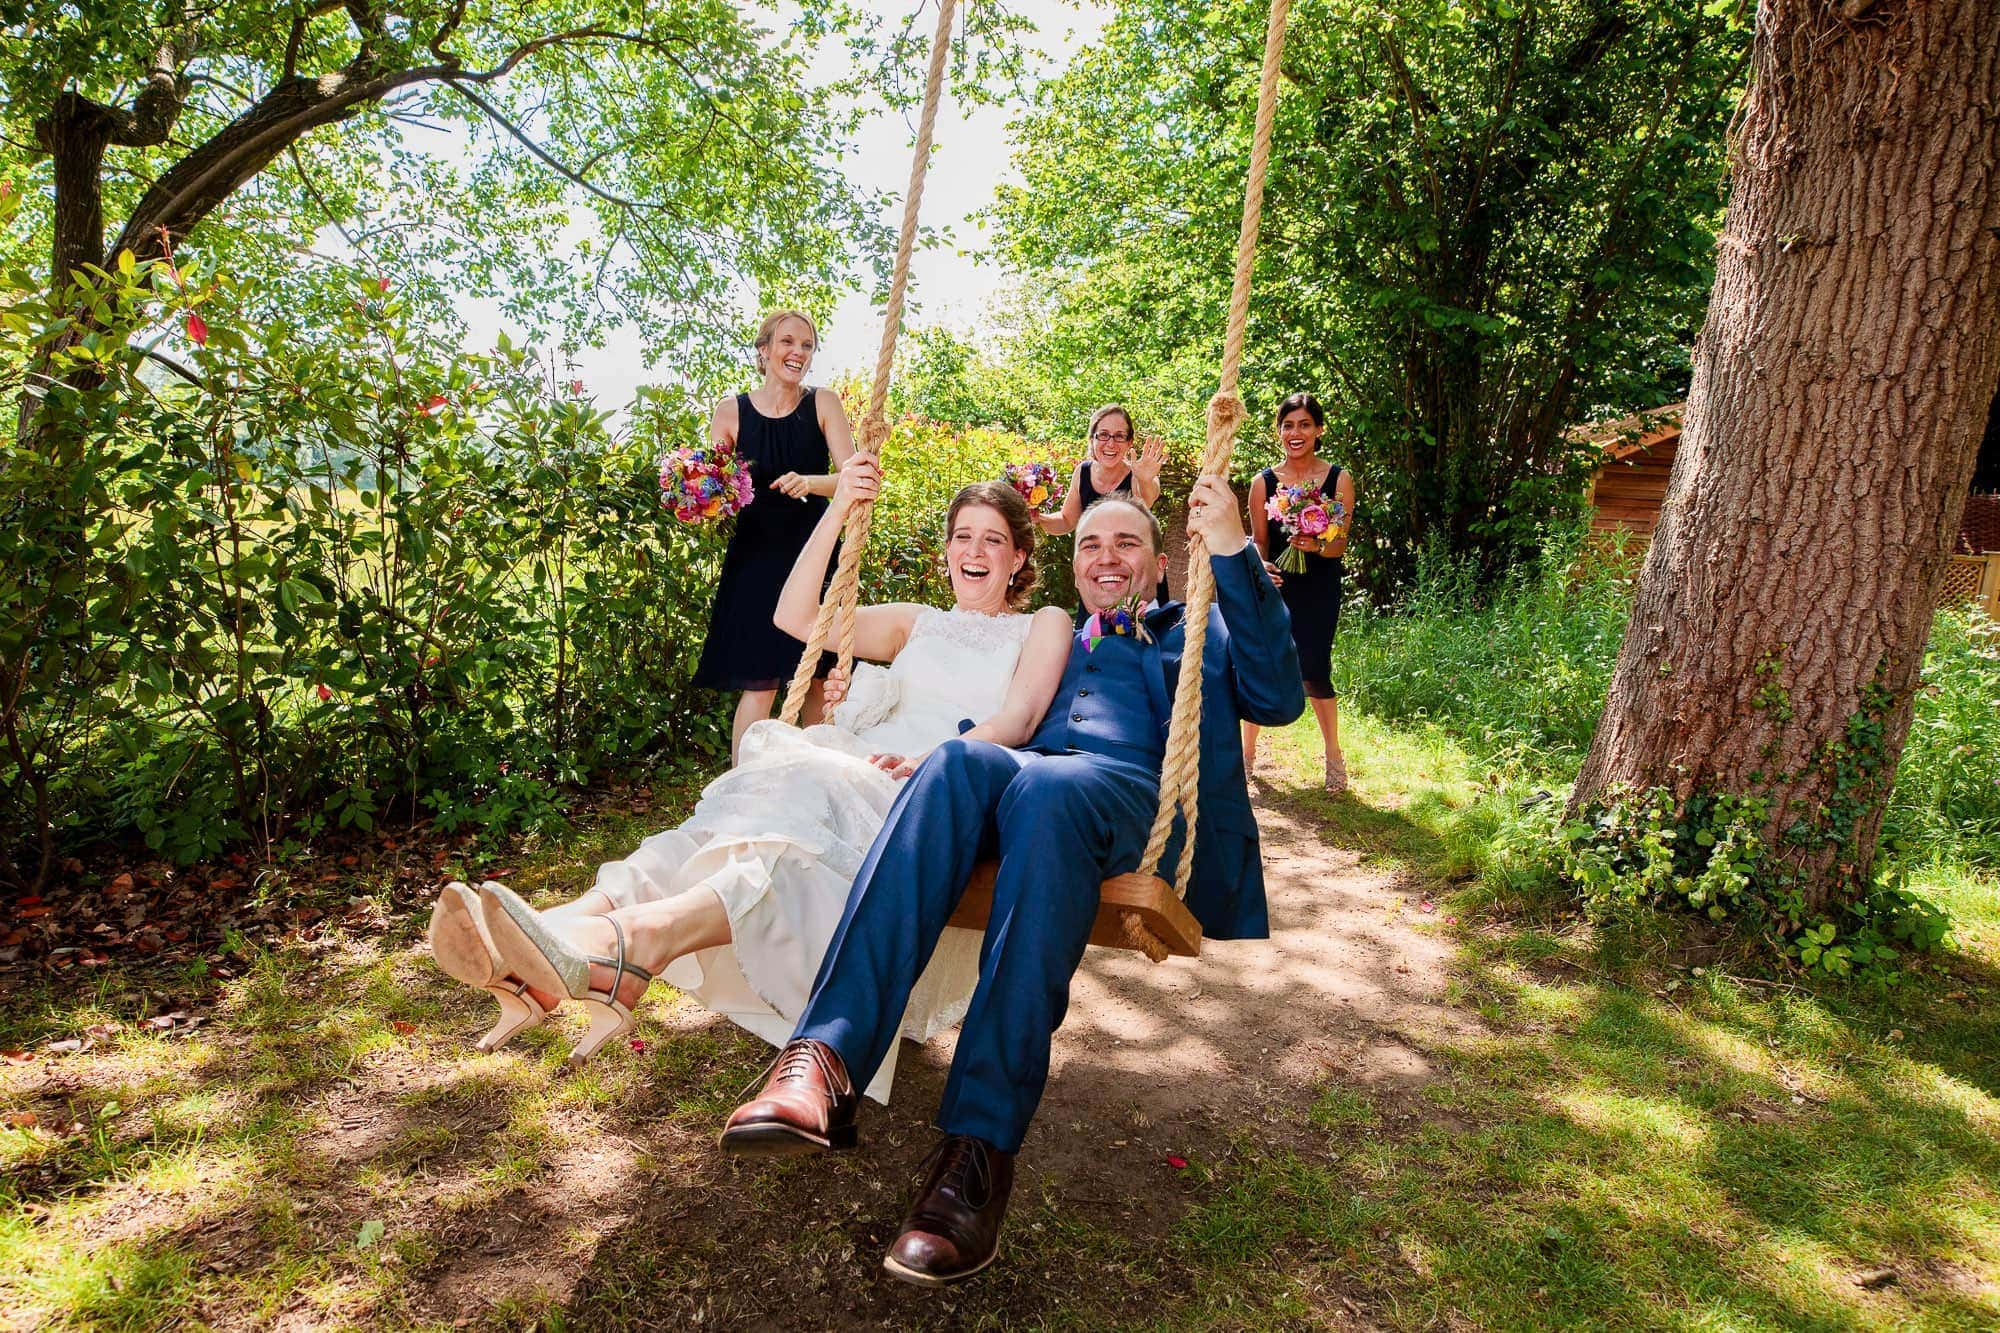 Millbridge Court Wedding Photographer - Couple on the Swing